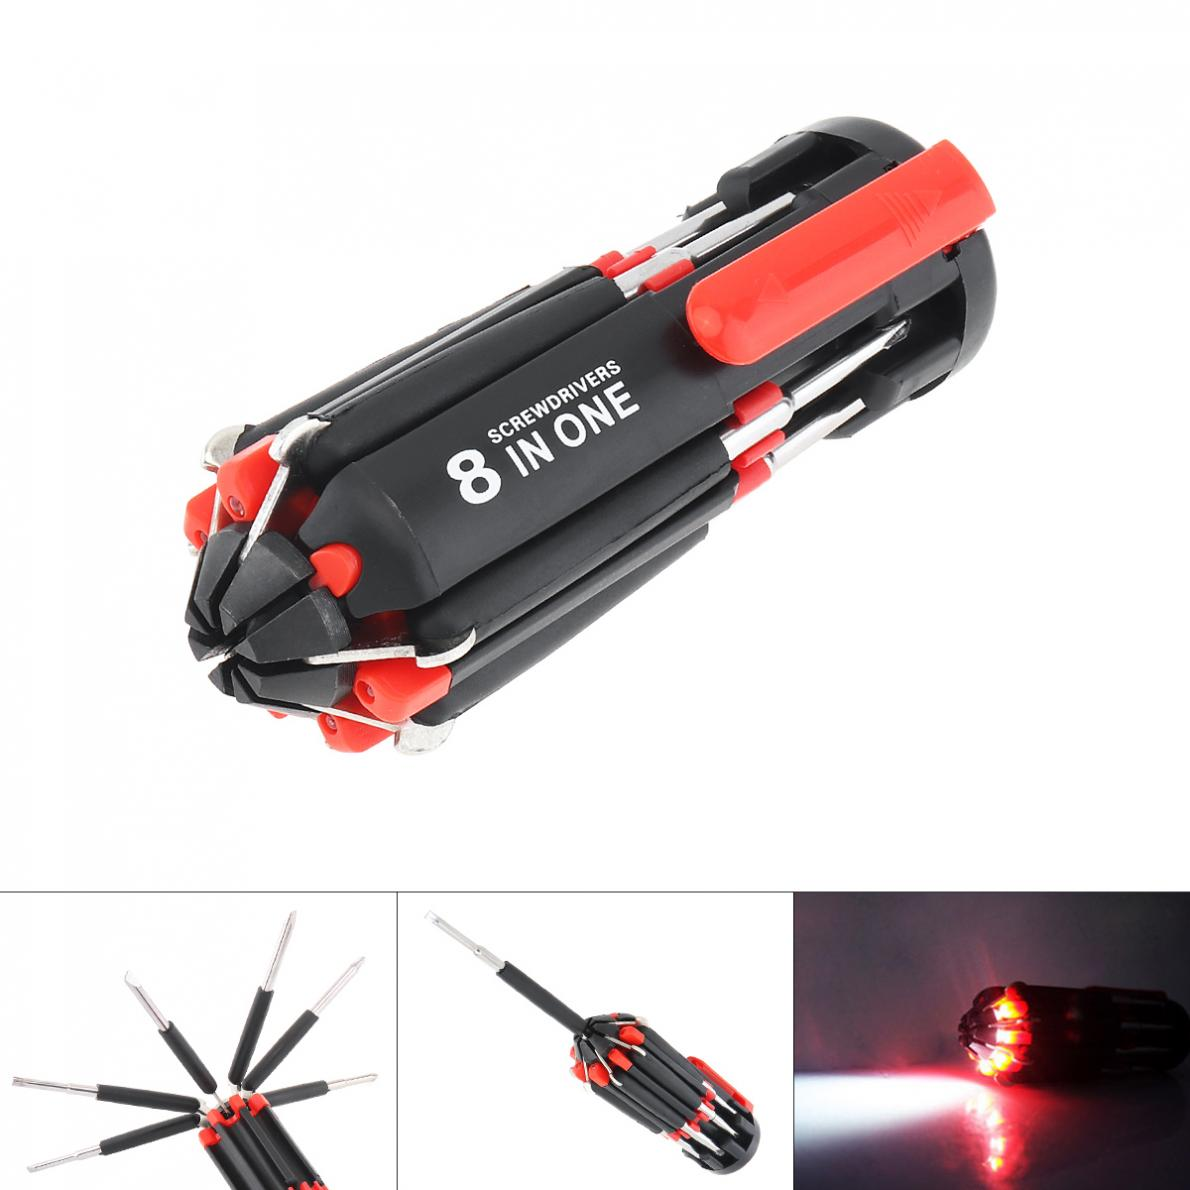 <font><b>8</b></font> <font><b>in</b></font> <font><b>1</b></font> Multi <font><b>Screwdriver</b></font> With 6 LED Torch Hand Repair Tools Up Multi Functional for Home Appliance Car image